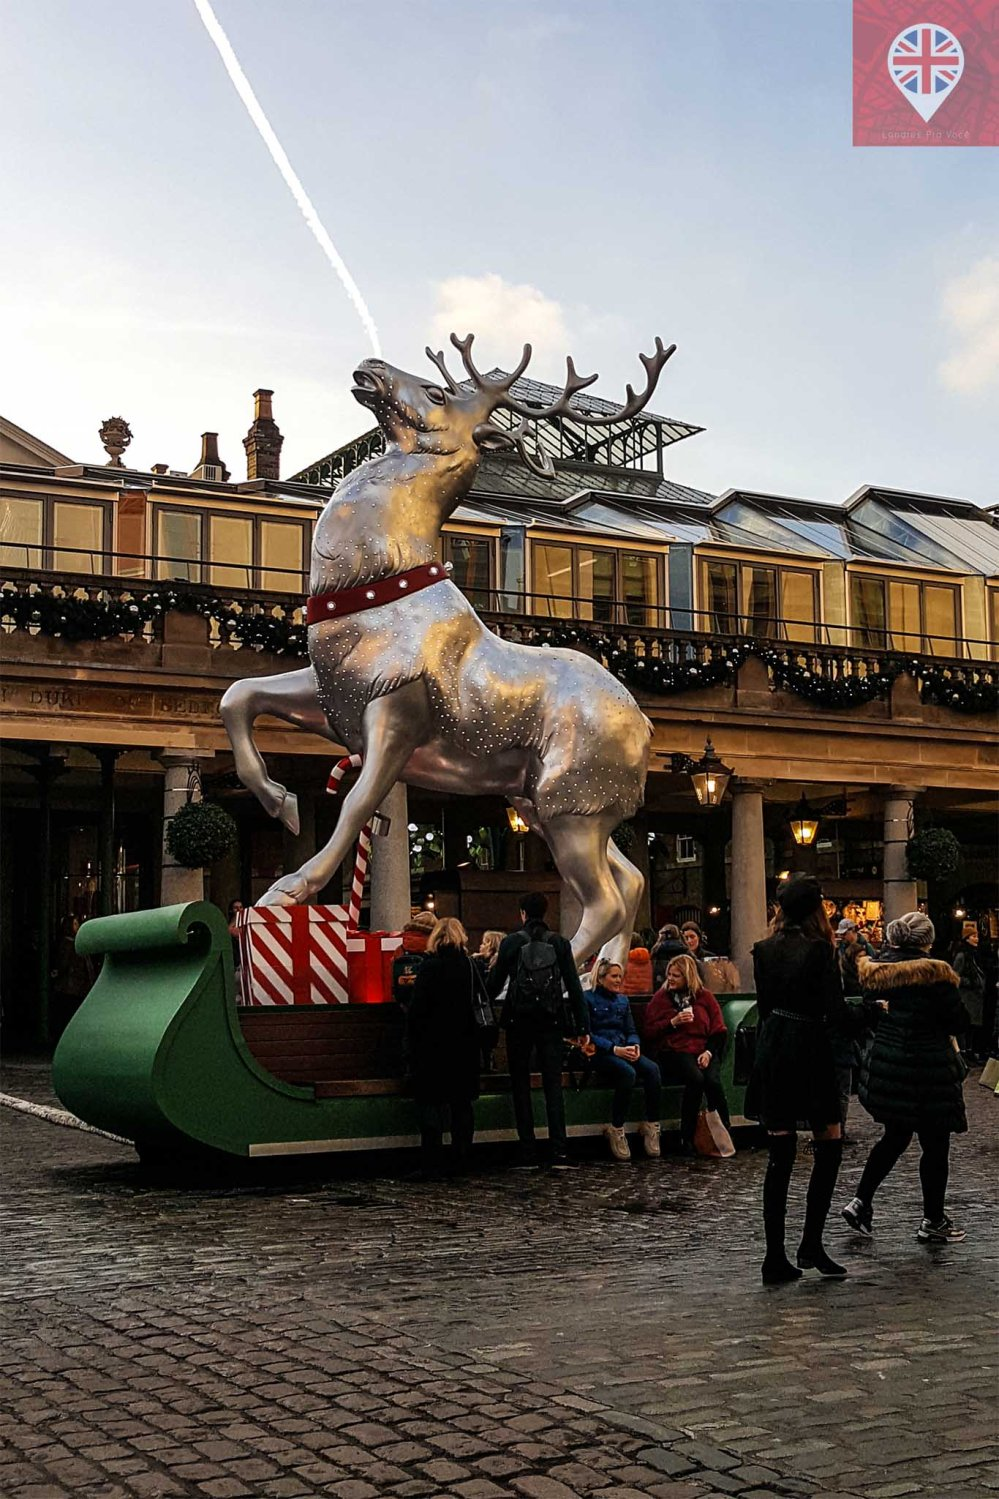 Covent Garden raindeer